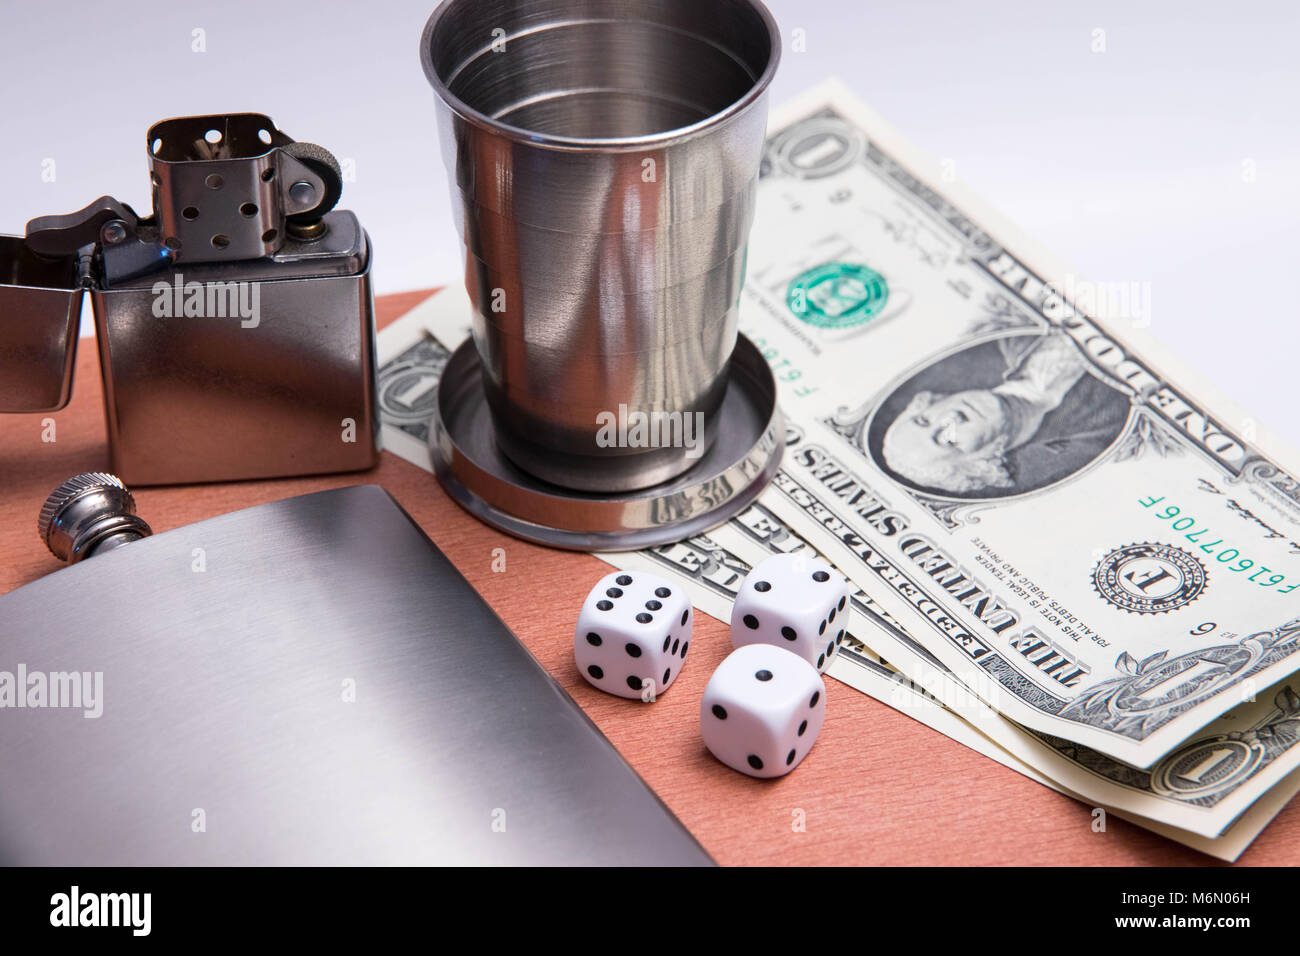 alcohol flash cigard lighter matches zippo glass dice dollar bill wood texture - Stock Image